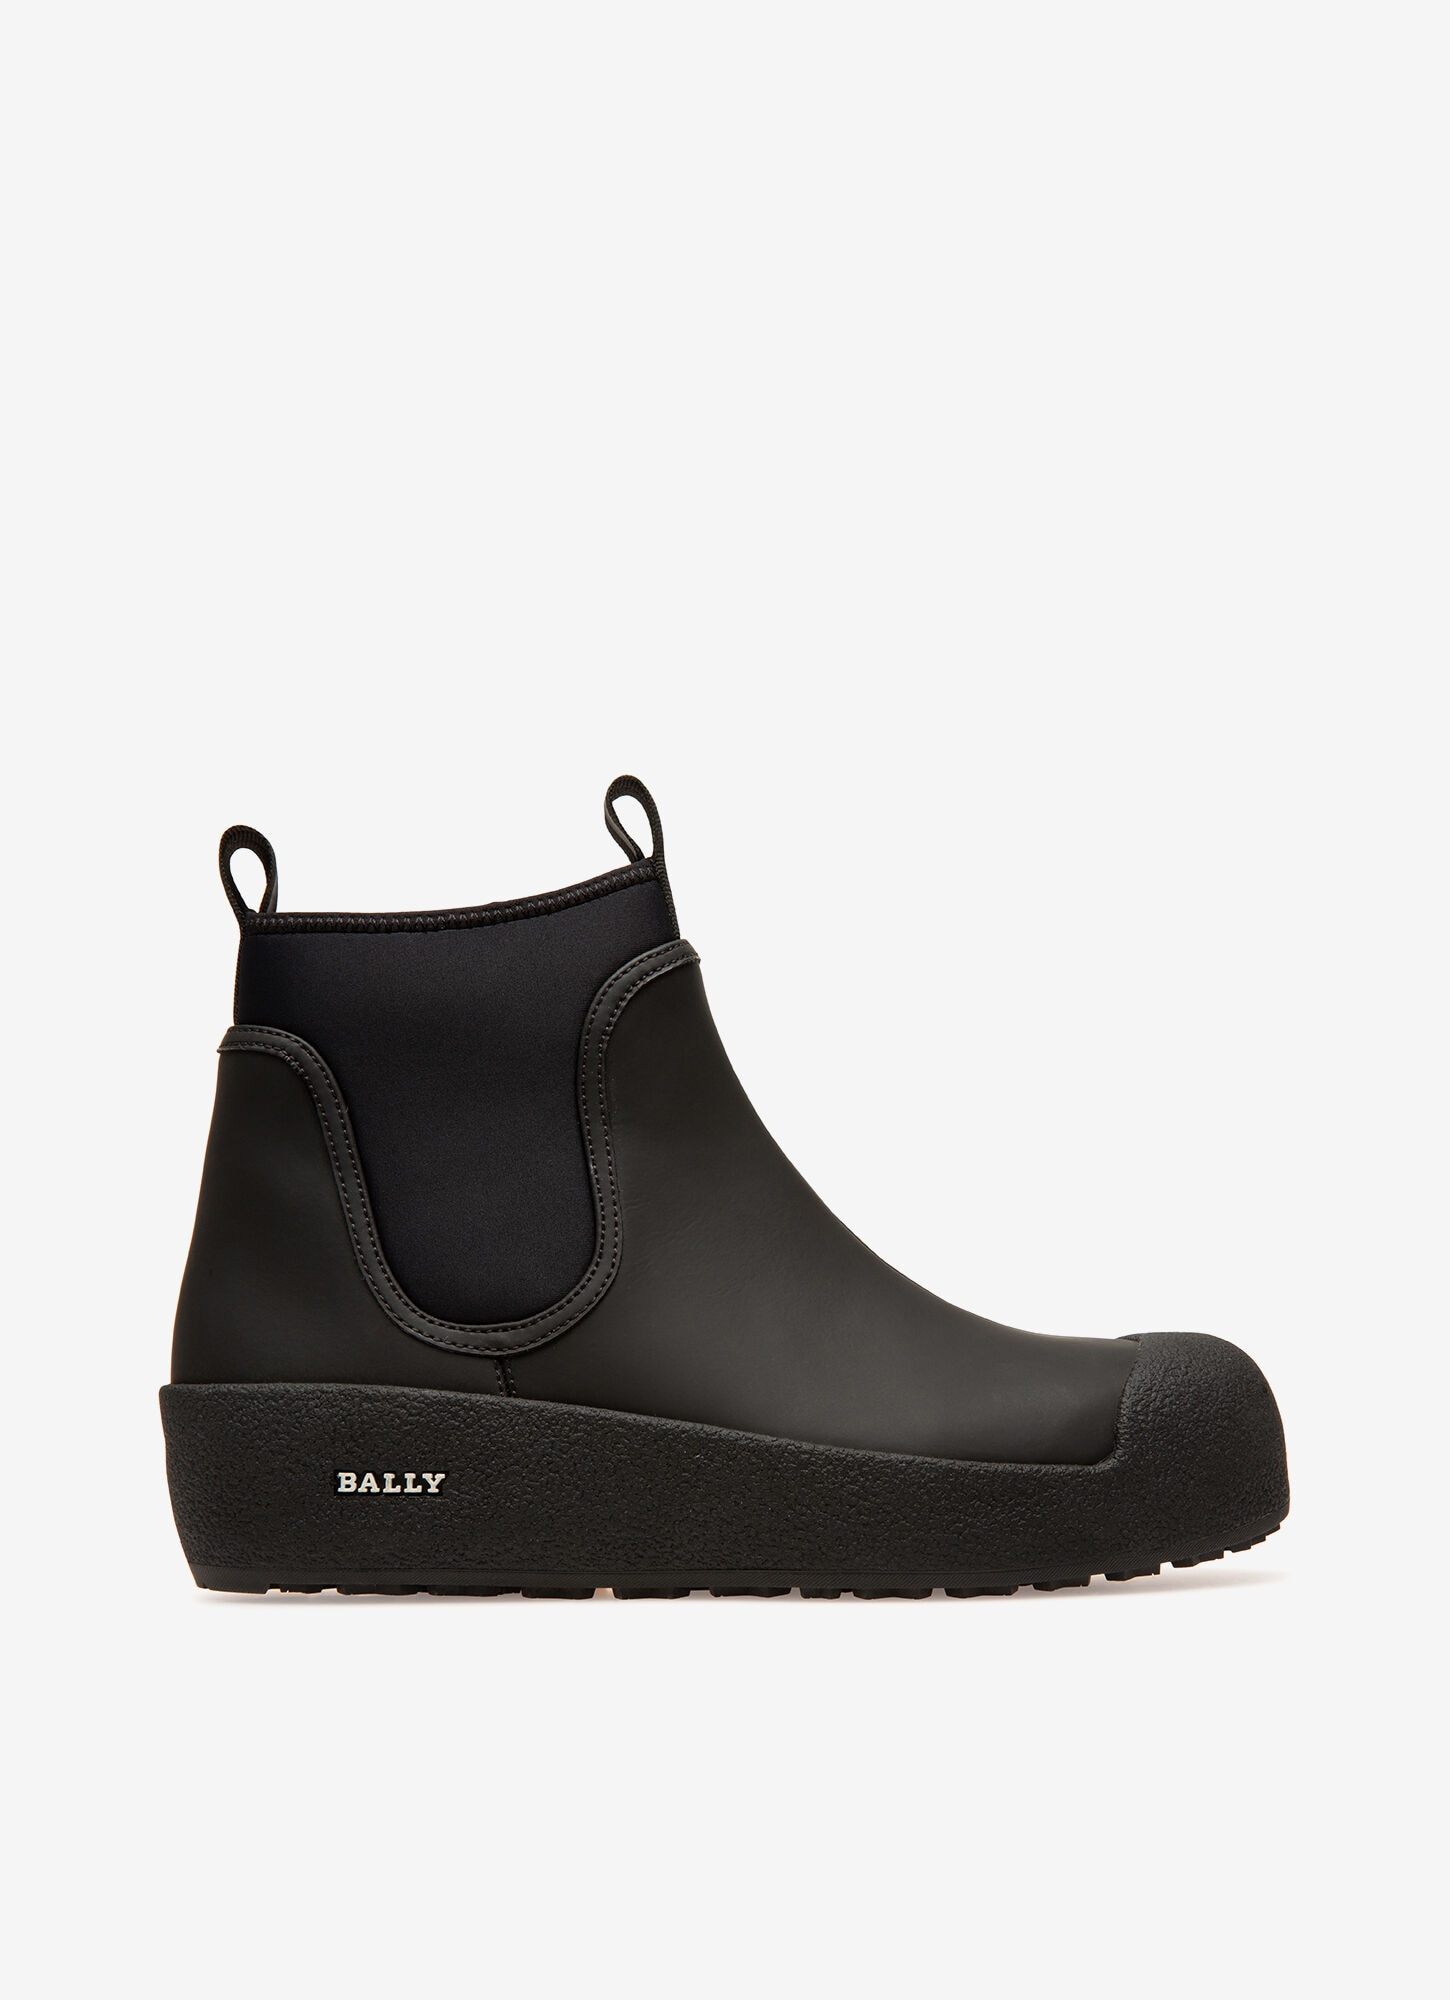 Gadey  Womens Boots   Black Leather   Bally